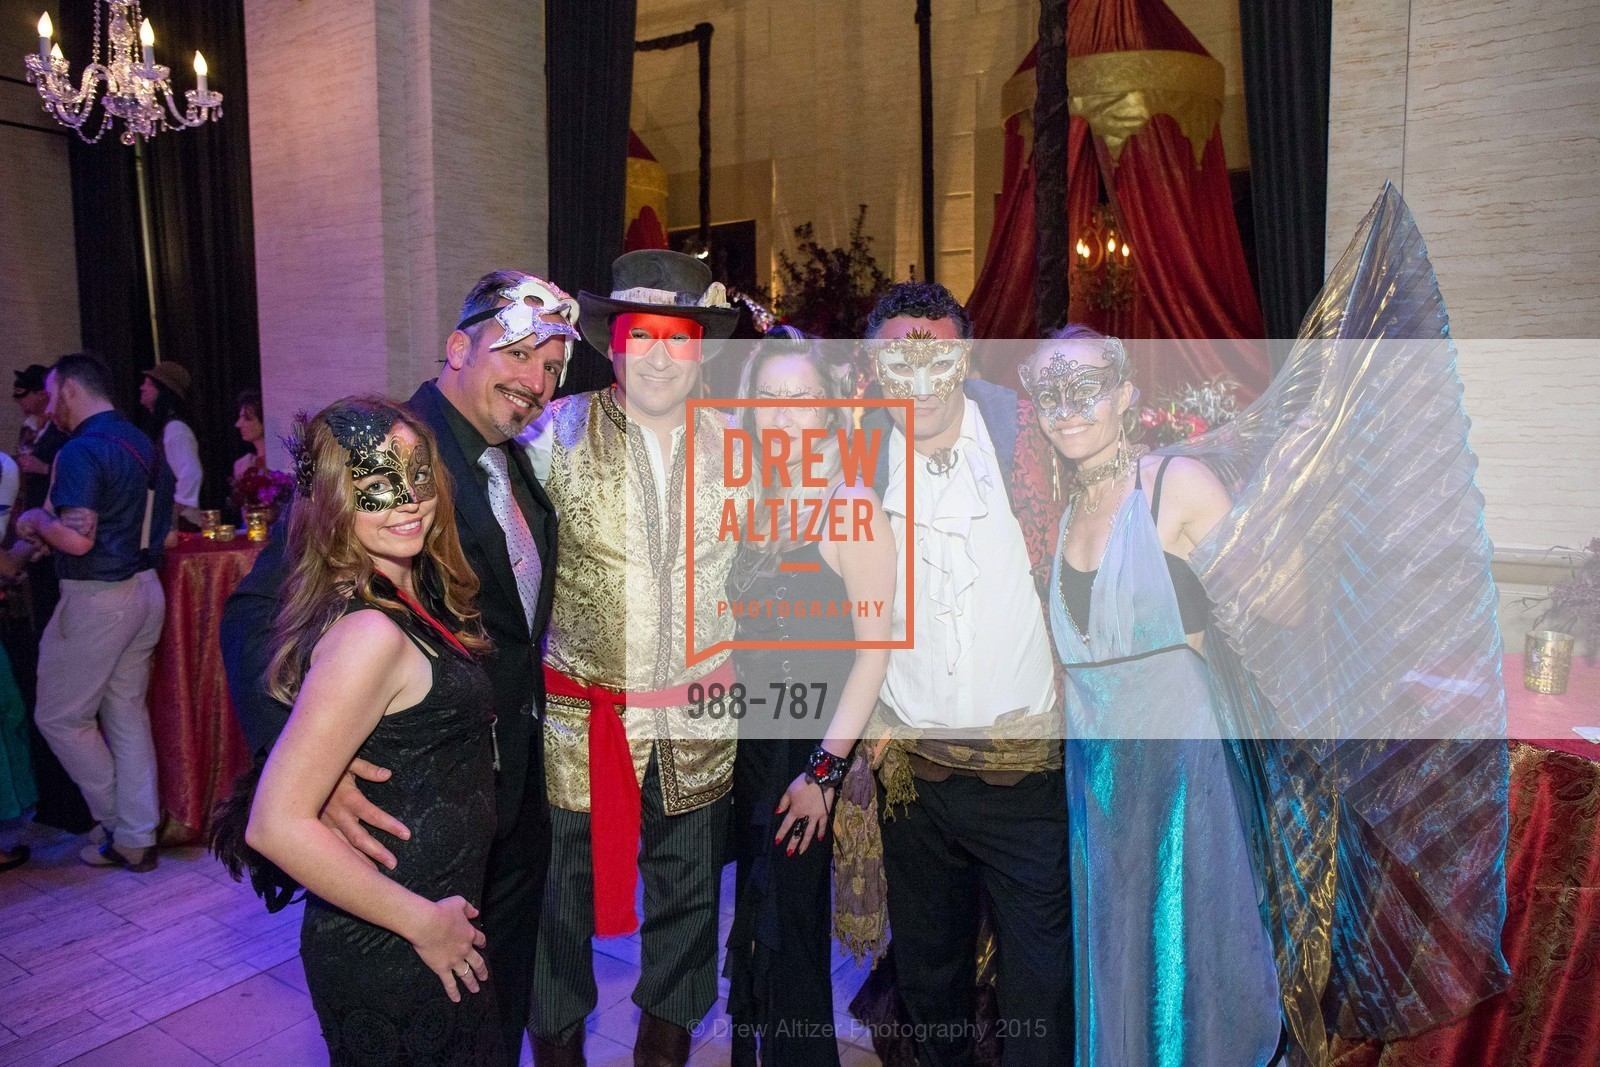 Lisa Betancourt, Erick Betancourt, Freddie Martinez, Asae Kondo, Cassidy Wollenburg, Dominique Rojas, Bently Engagement, US, April 13th, 2015,Drew Altizer, Drew Altizer Photography, full-service agency, private events, San Francisco photographer, photographer california